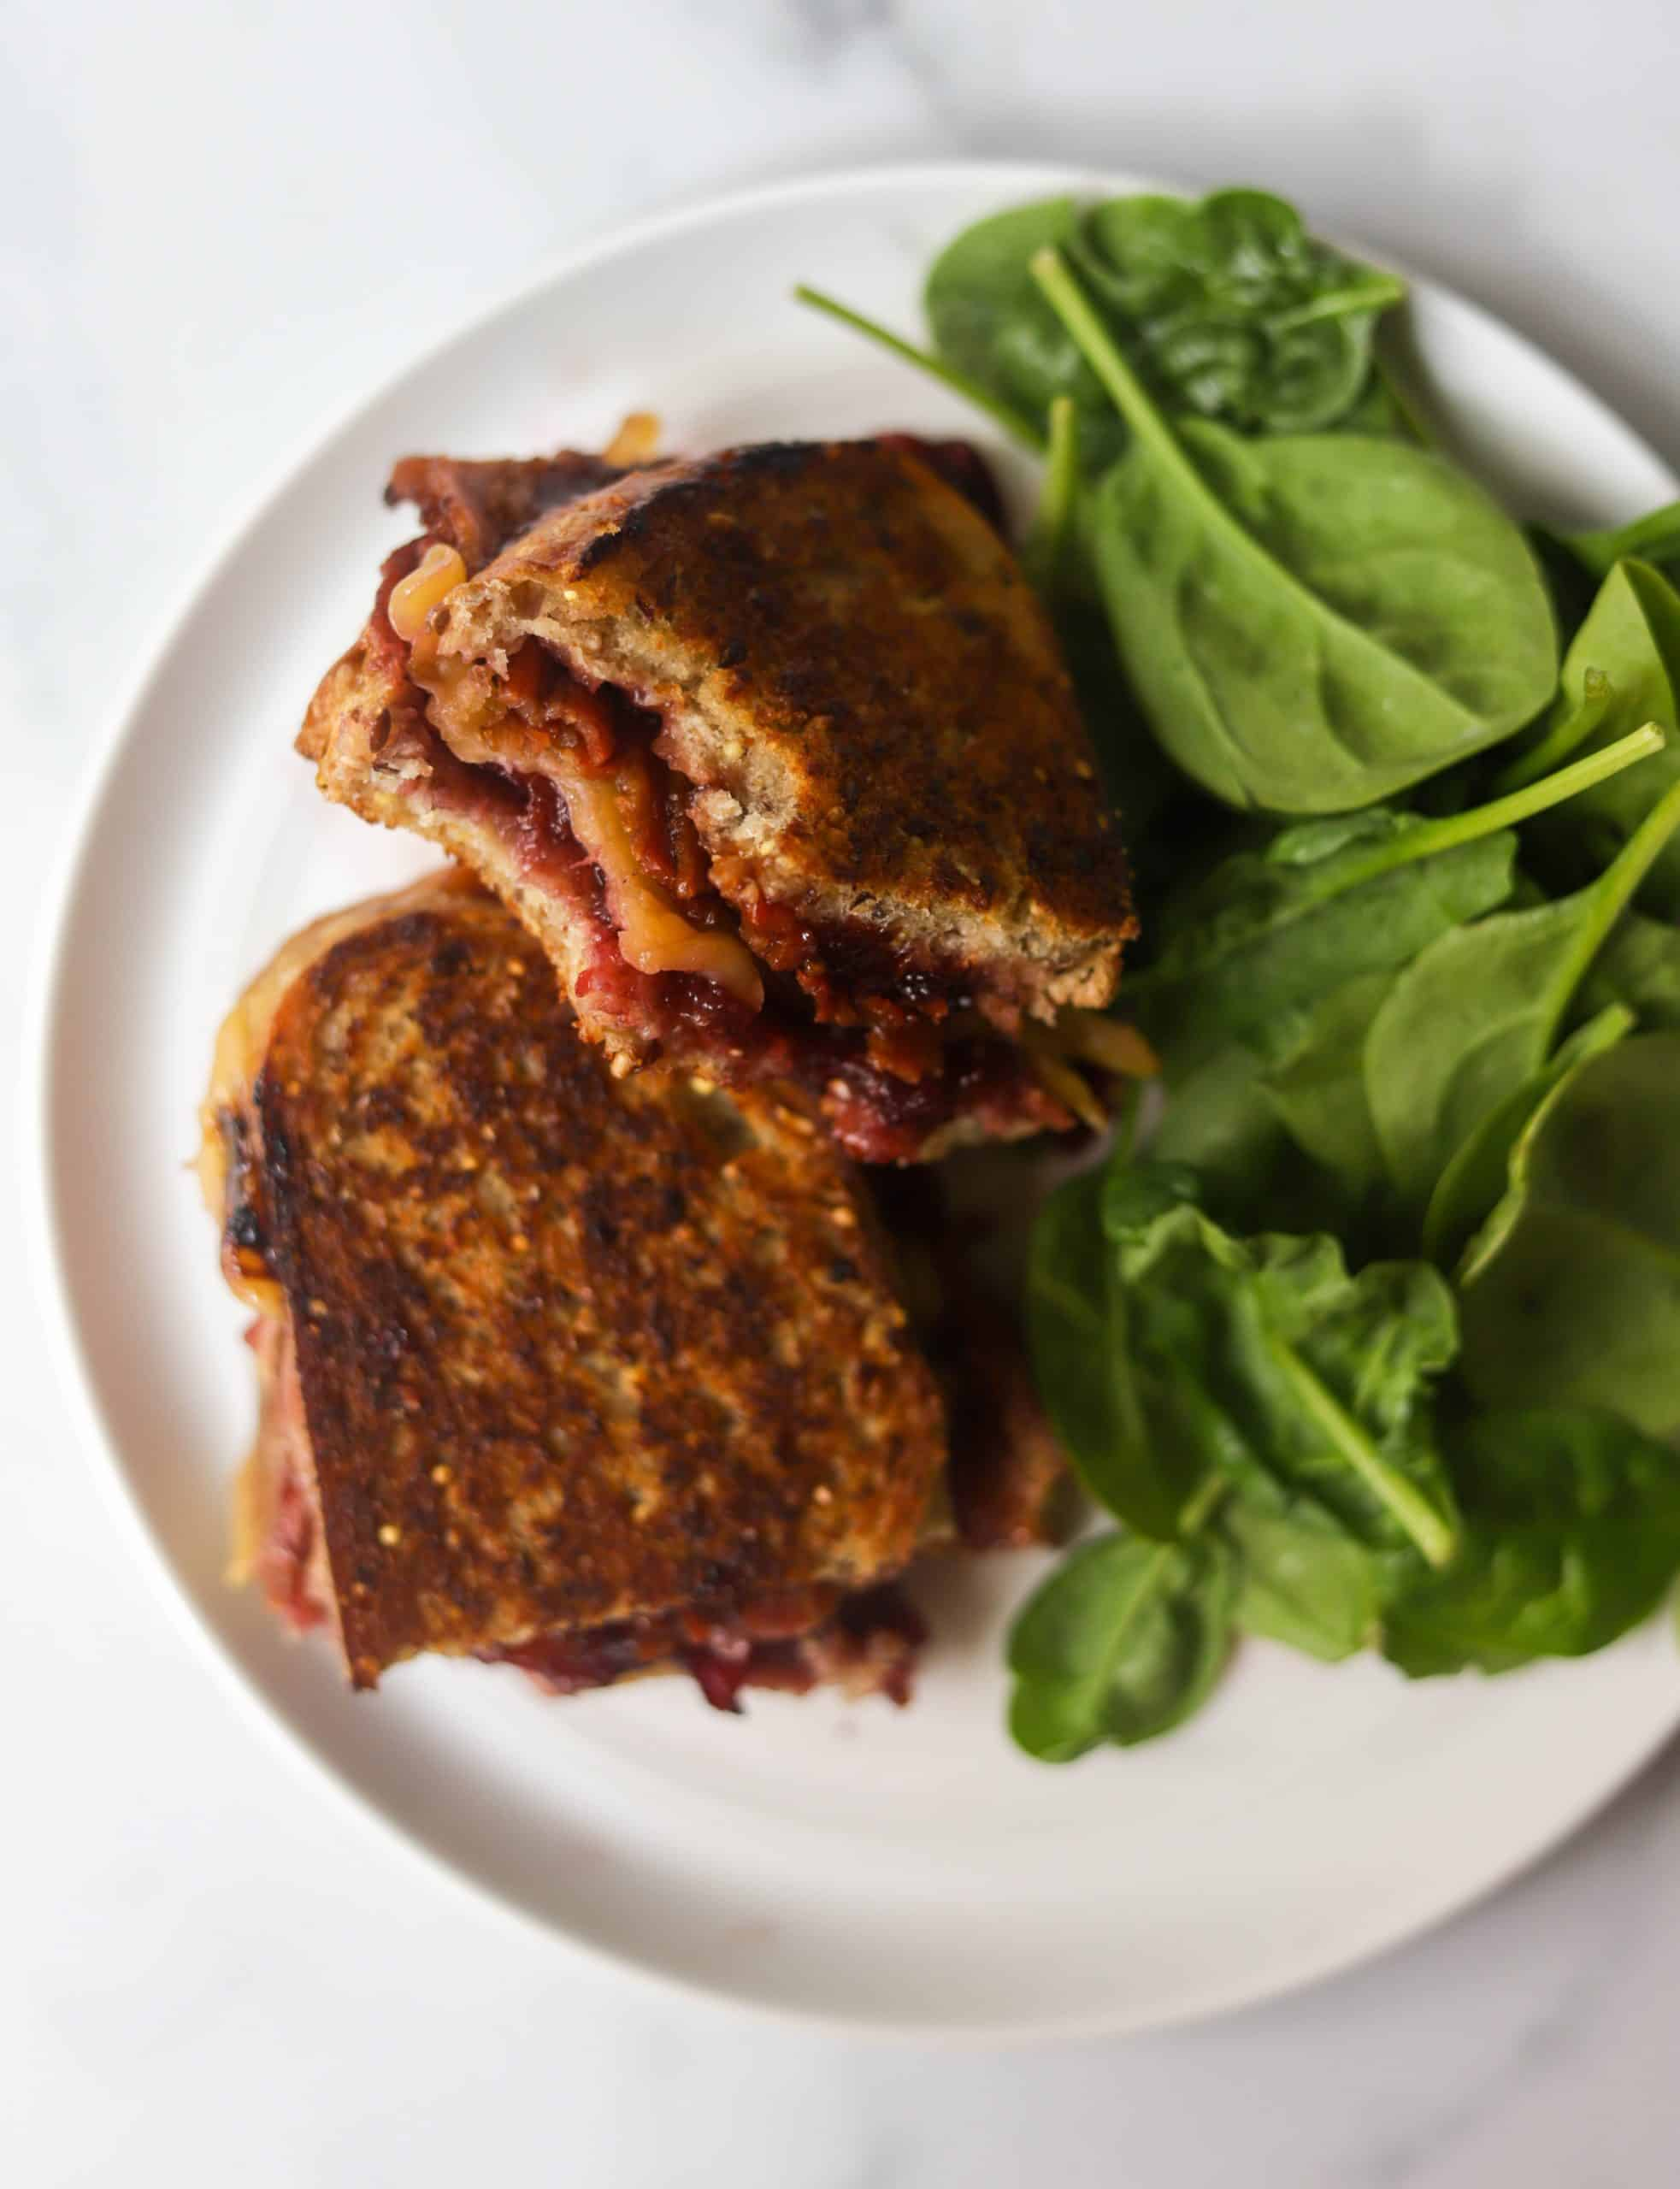 A birds eye view of a grilled cheese sandwich and spinach salad.